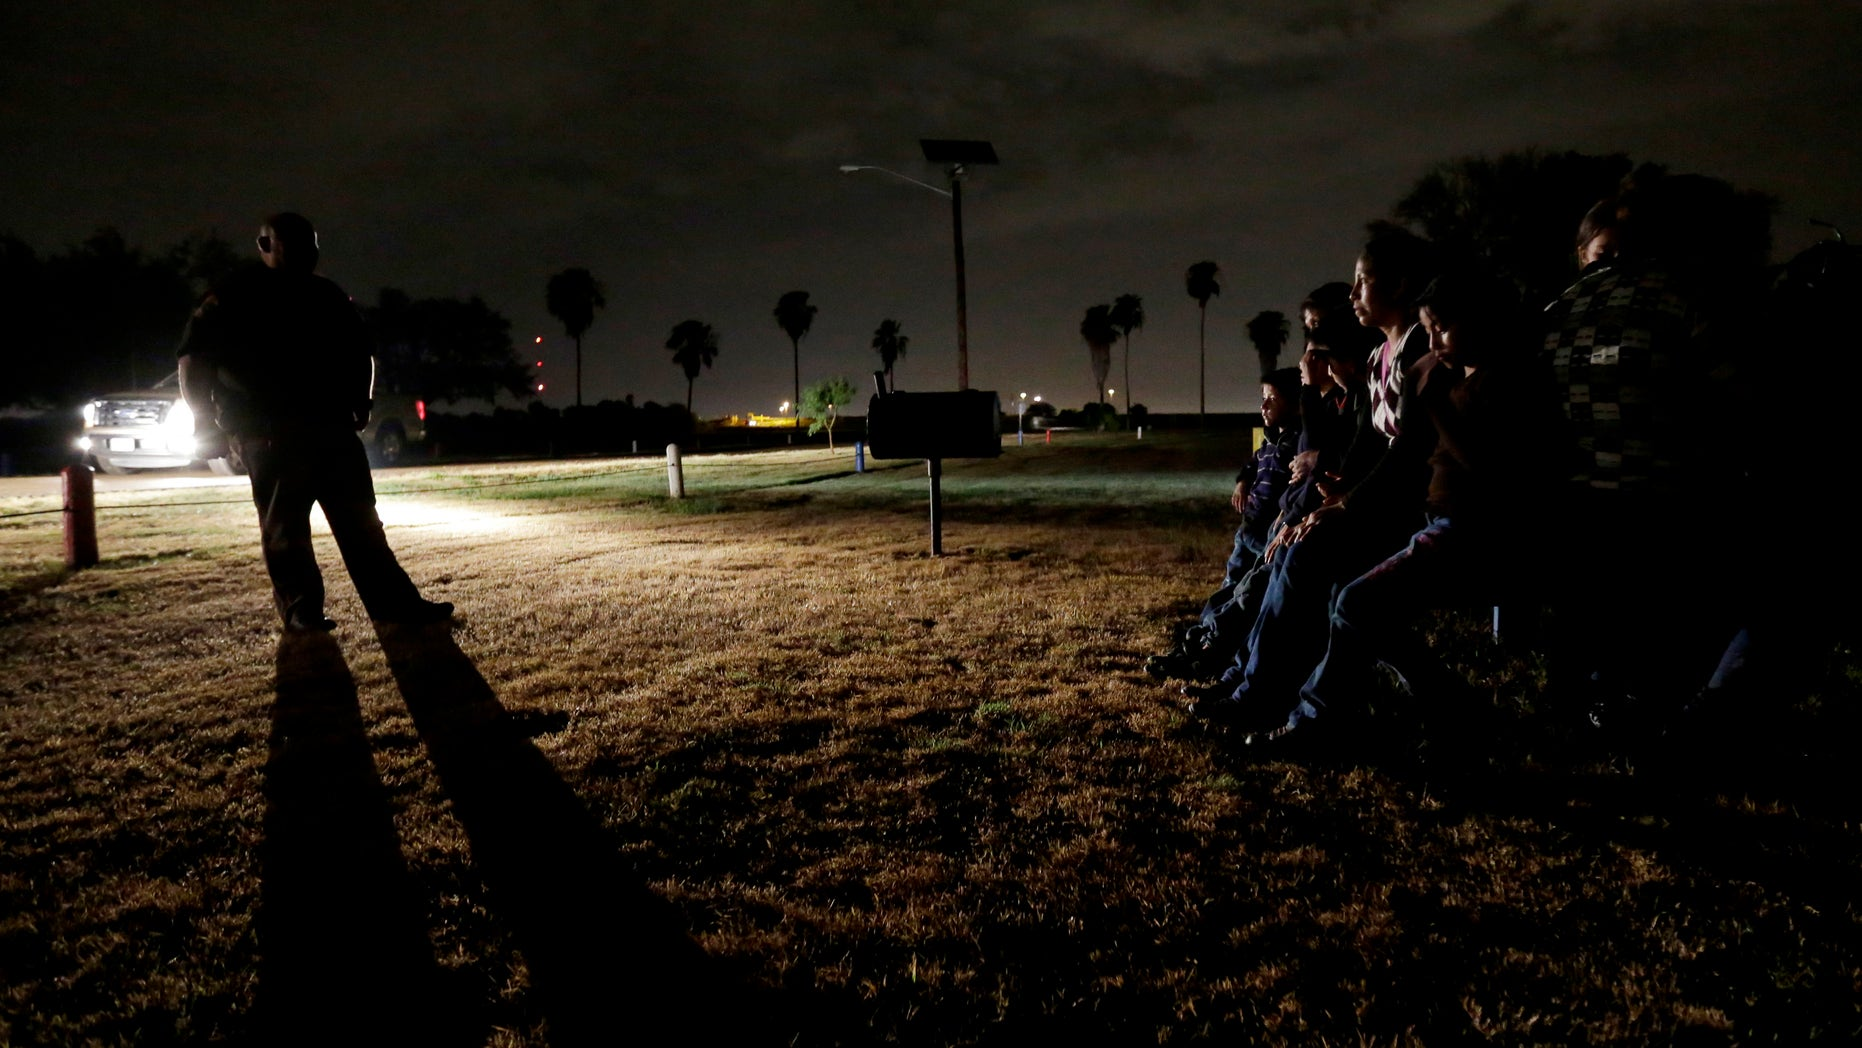 June 25, 2014: A group of immigrants from Honduras and El Salvador, who crossed the U.S.-Mexico border illegally, are stopped in Granjeno, Texas. Just since October, the Border Patrols Rio Grande Valley sector has made more than 194,000 arrests, nearly triple that of any other sector. (AP/Eric Gay)